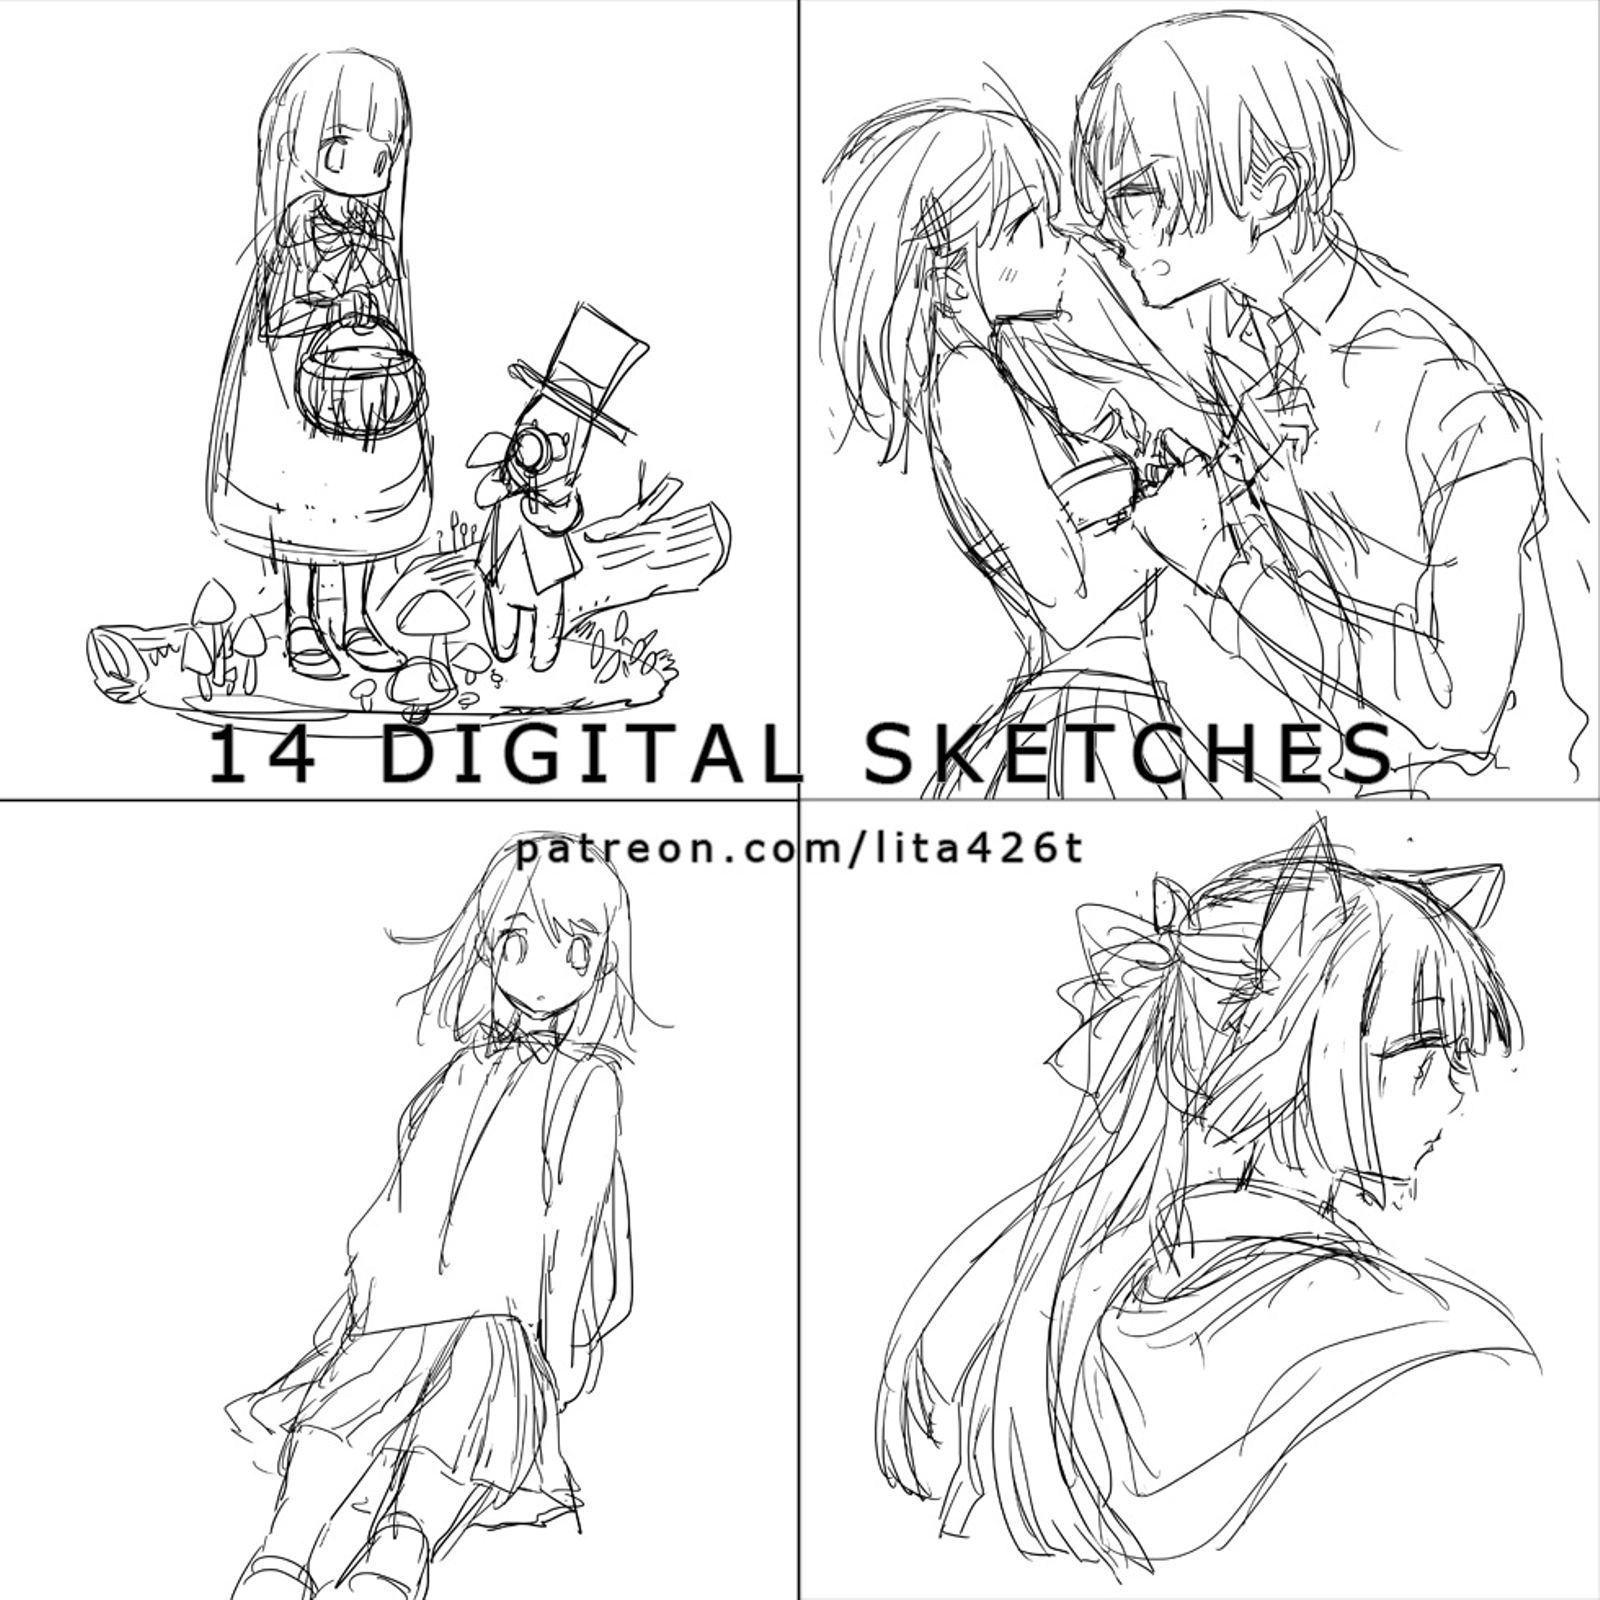 14 Digital Sketches : 20171113 | Tachibana Lita on Patreon